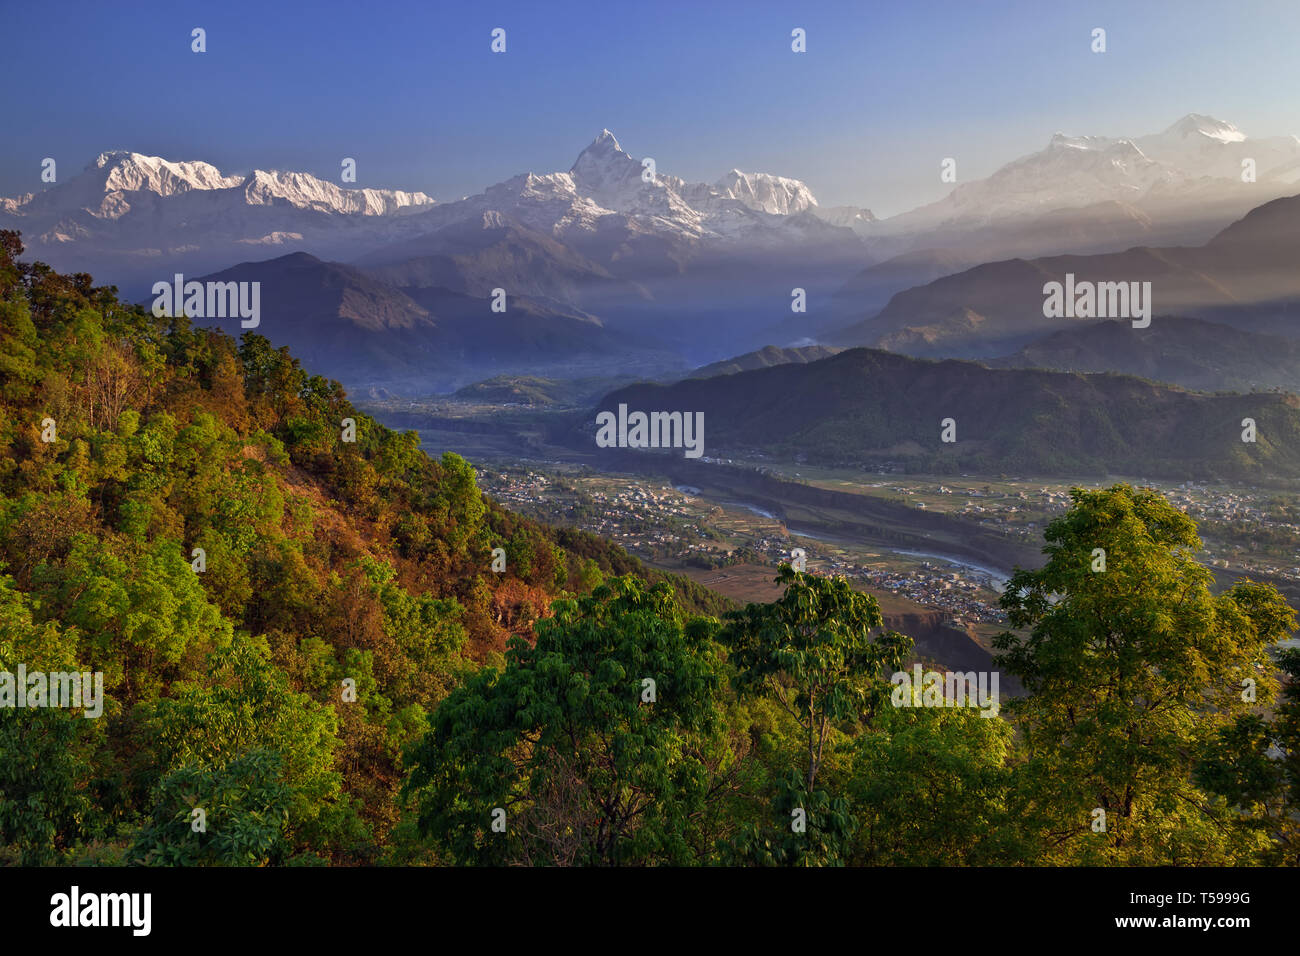 The view from Sarankot above Pokhara in Nepal - Stock Image